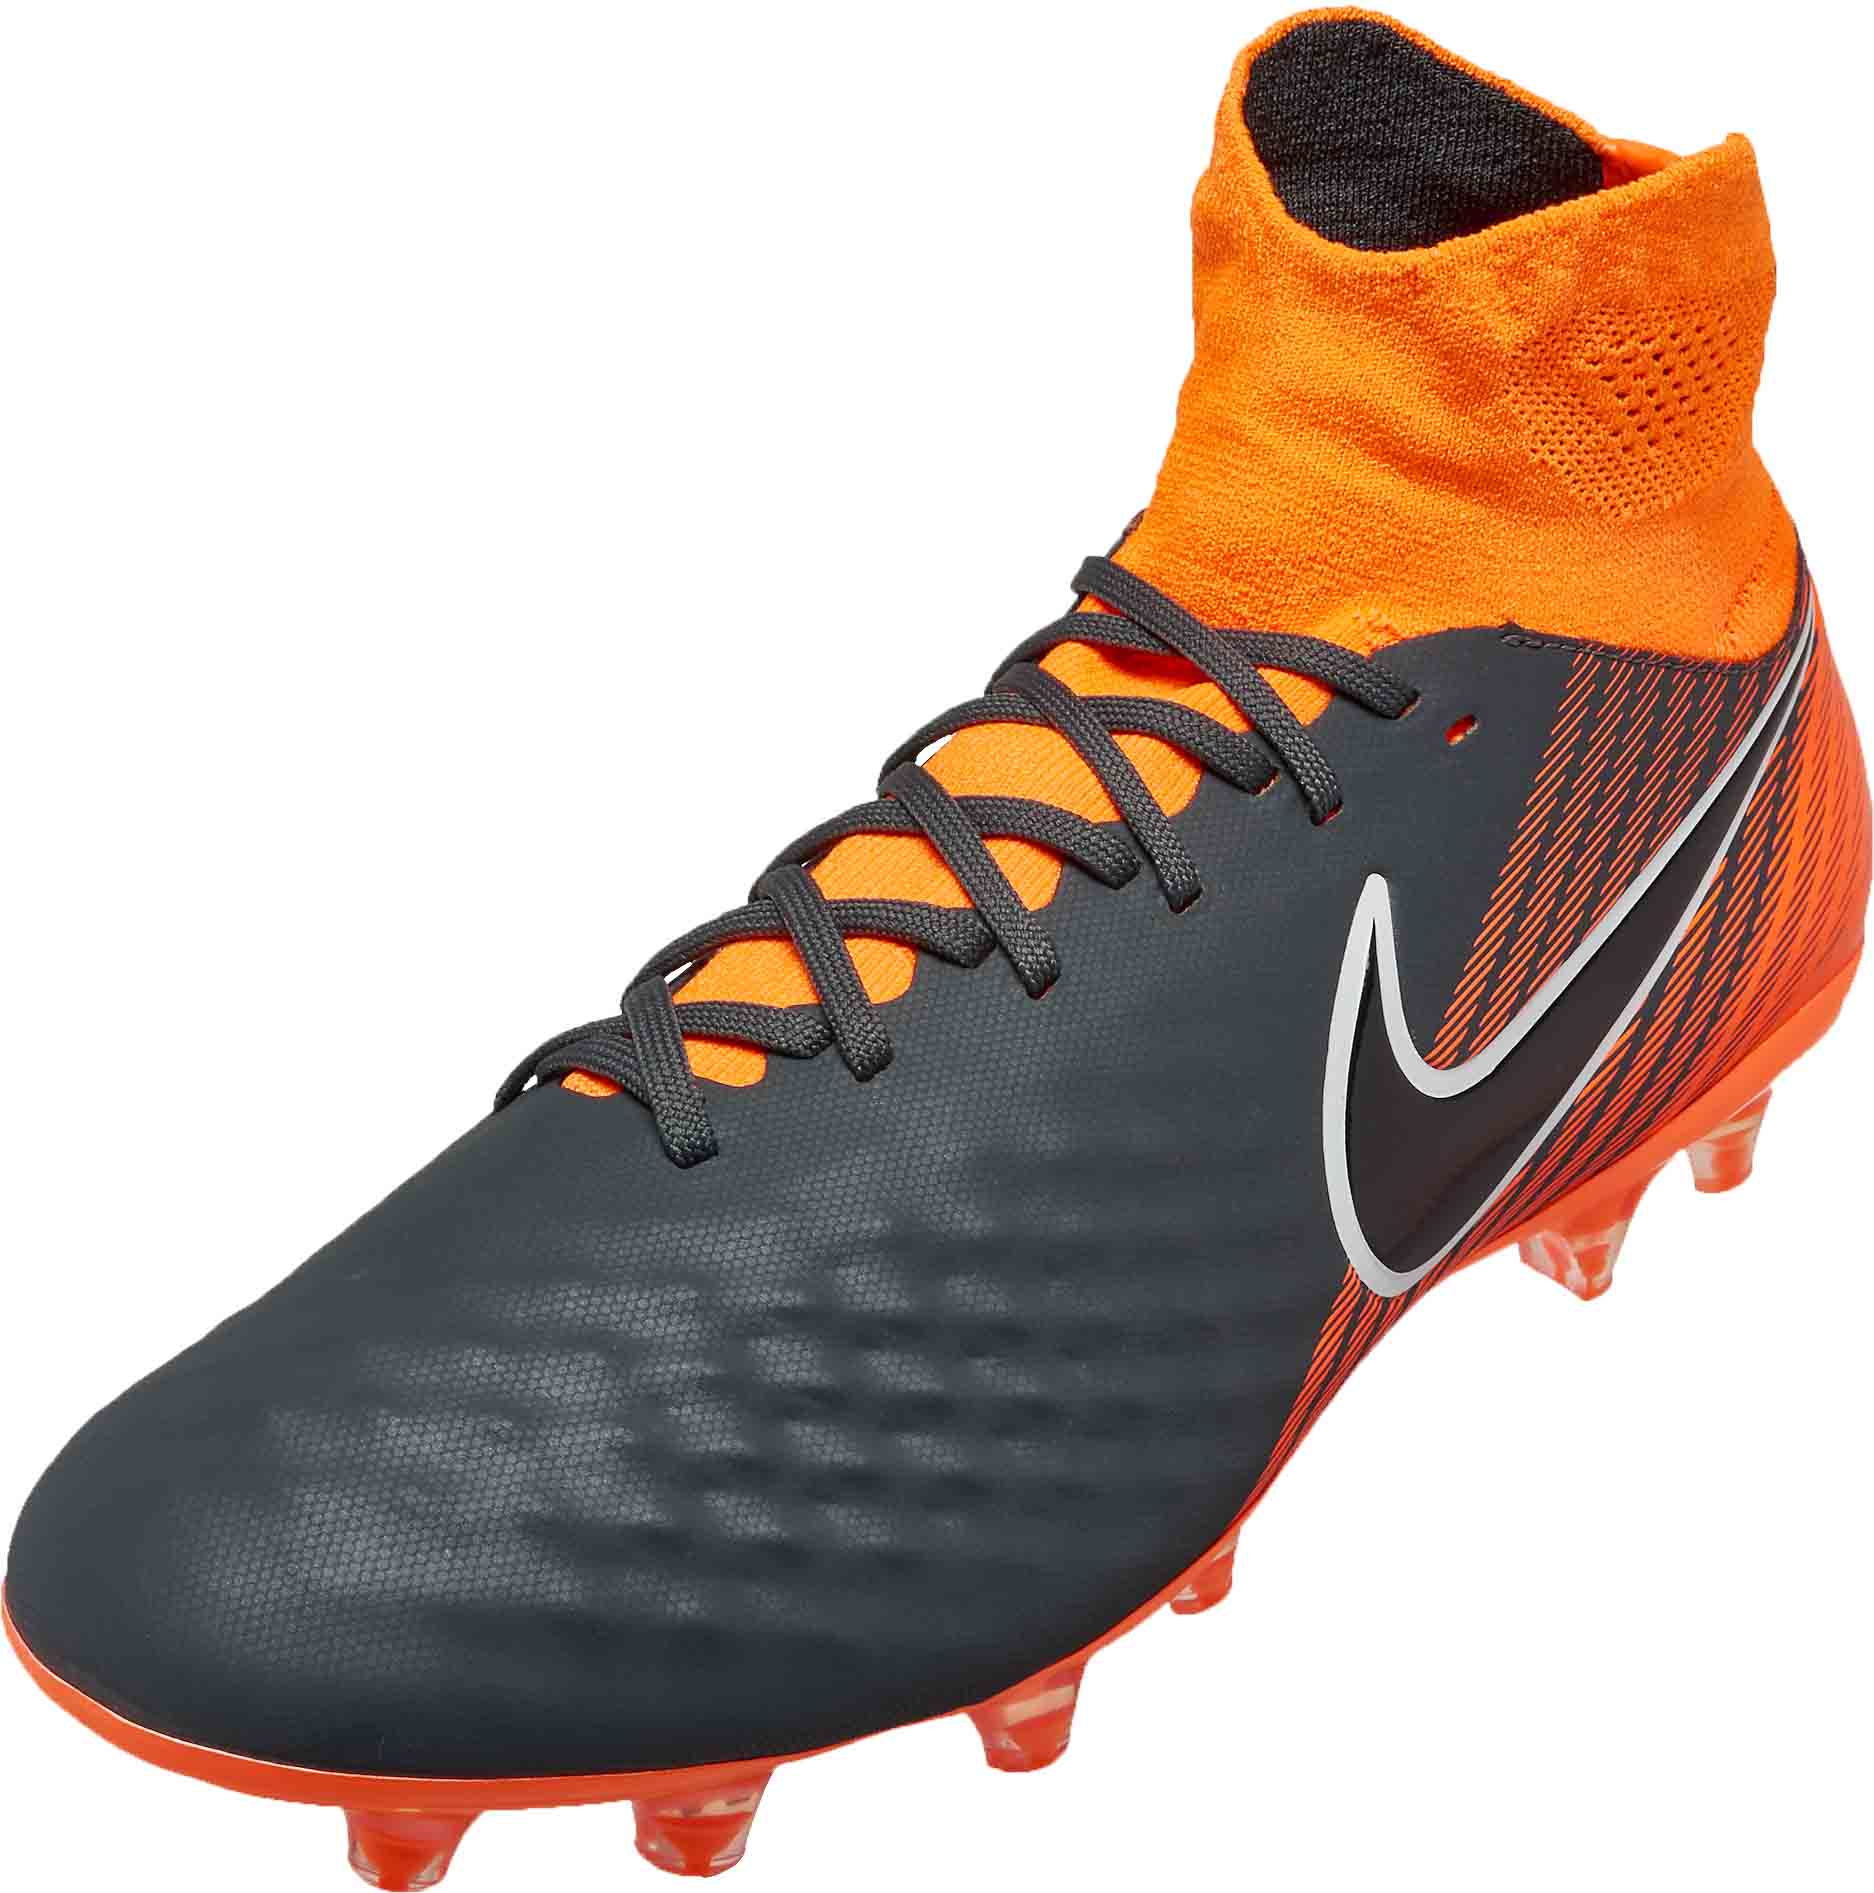 New Nike Soccer Shoes Magista